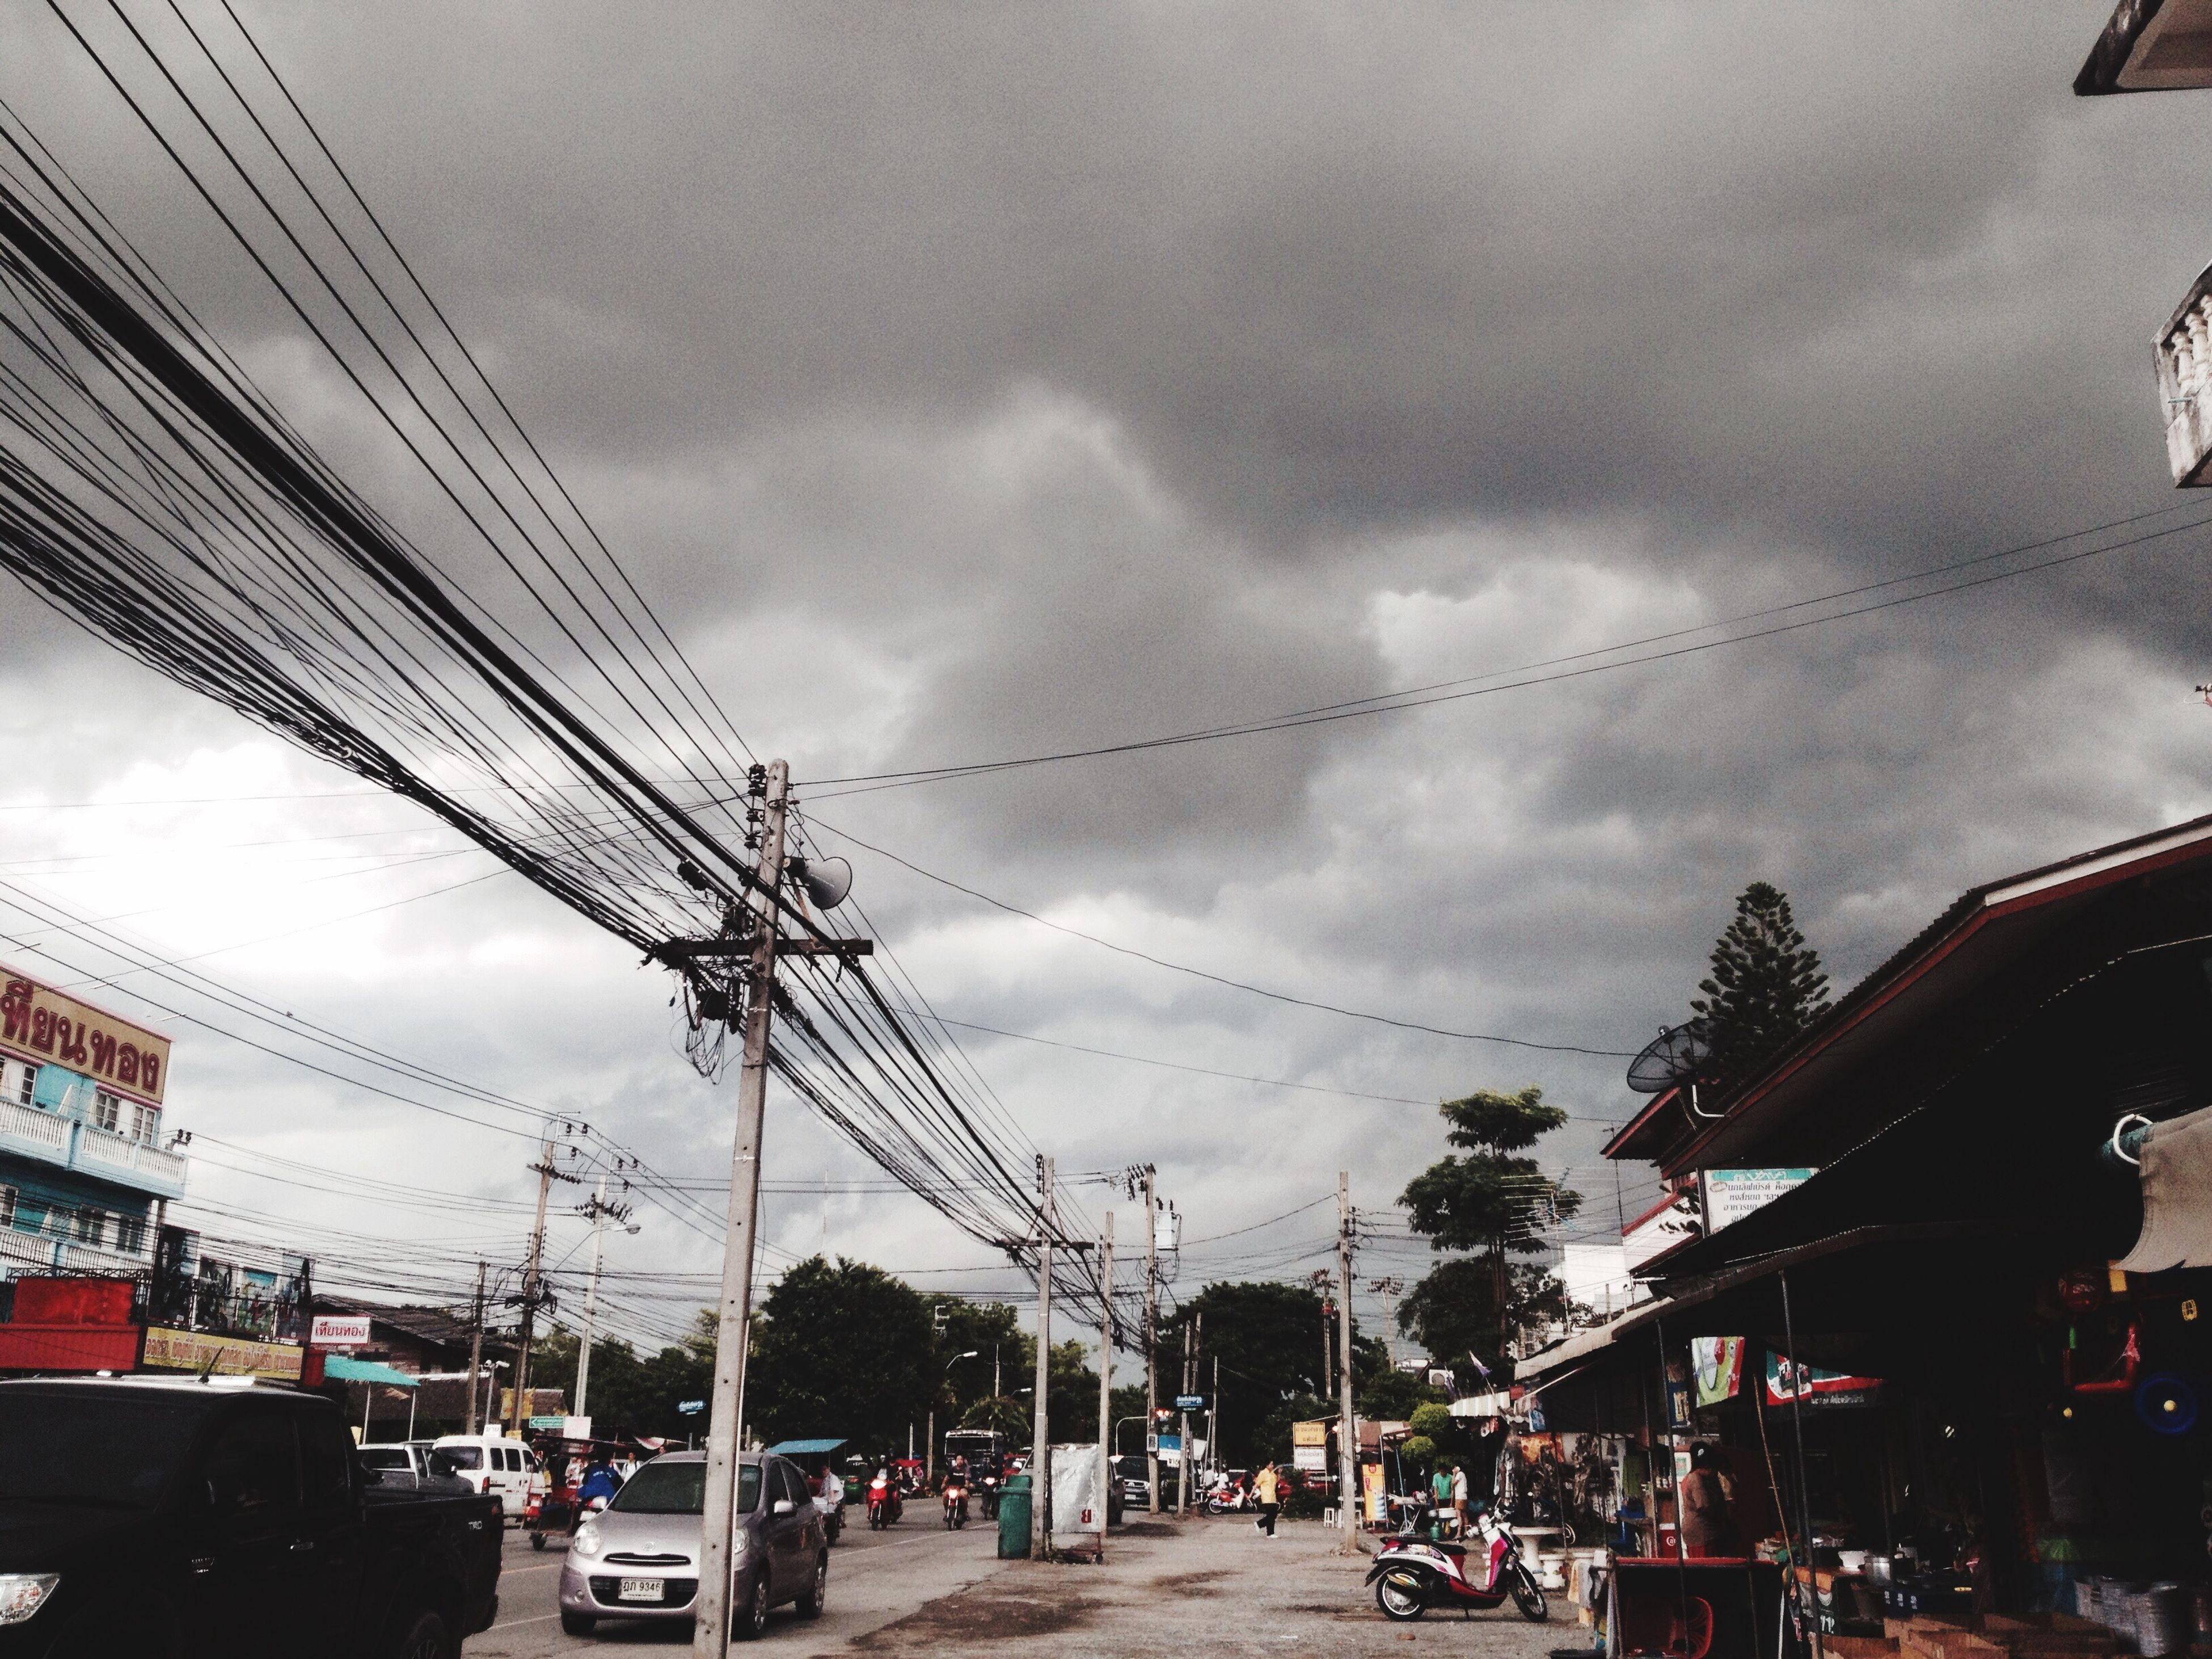 cable, sky, cloud - sky, power line, car, power supply, electricity pylon, transportation, street, incidental people, electricity, road, built structure, land vehicle, outdoors, day, building exterior, mode of transport, architecture, telephone line, tree, city, people